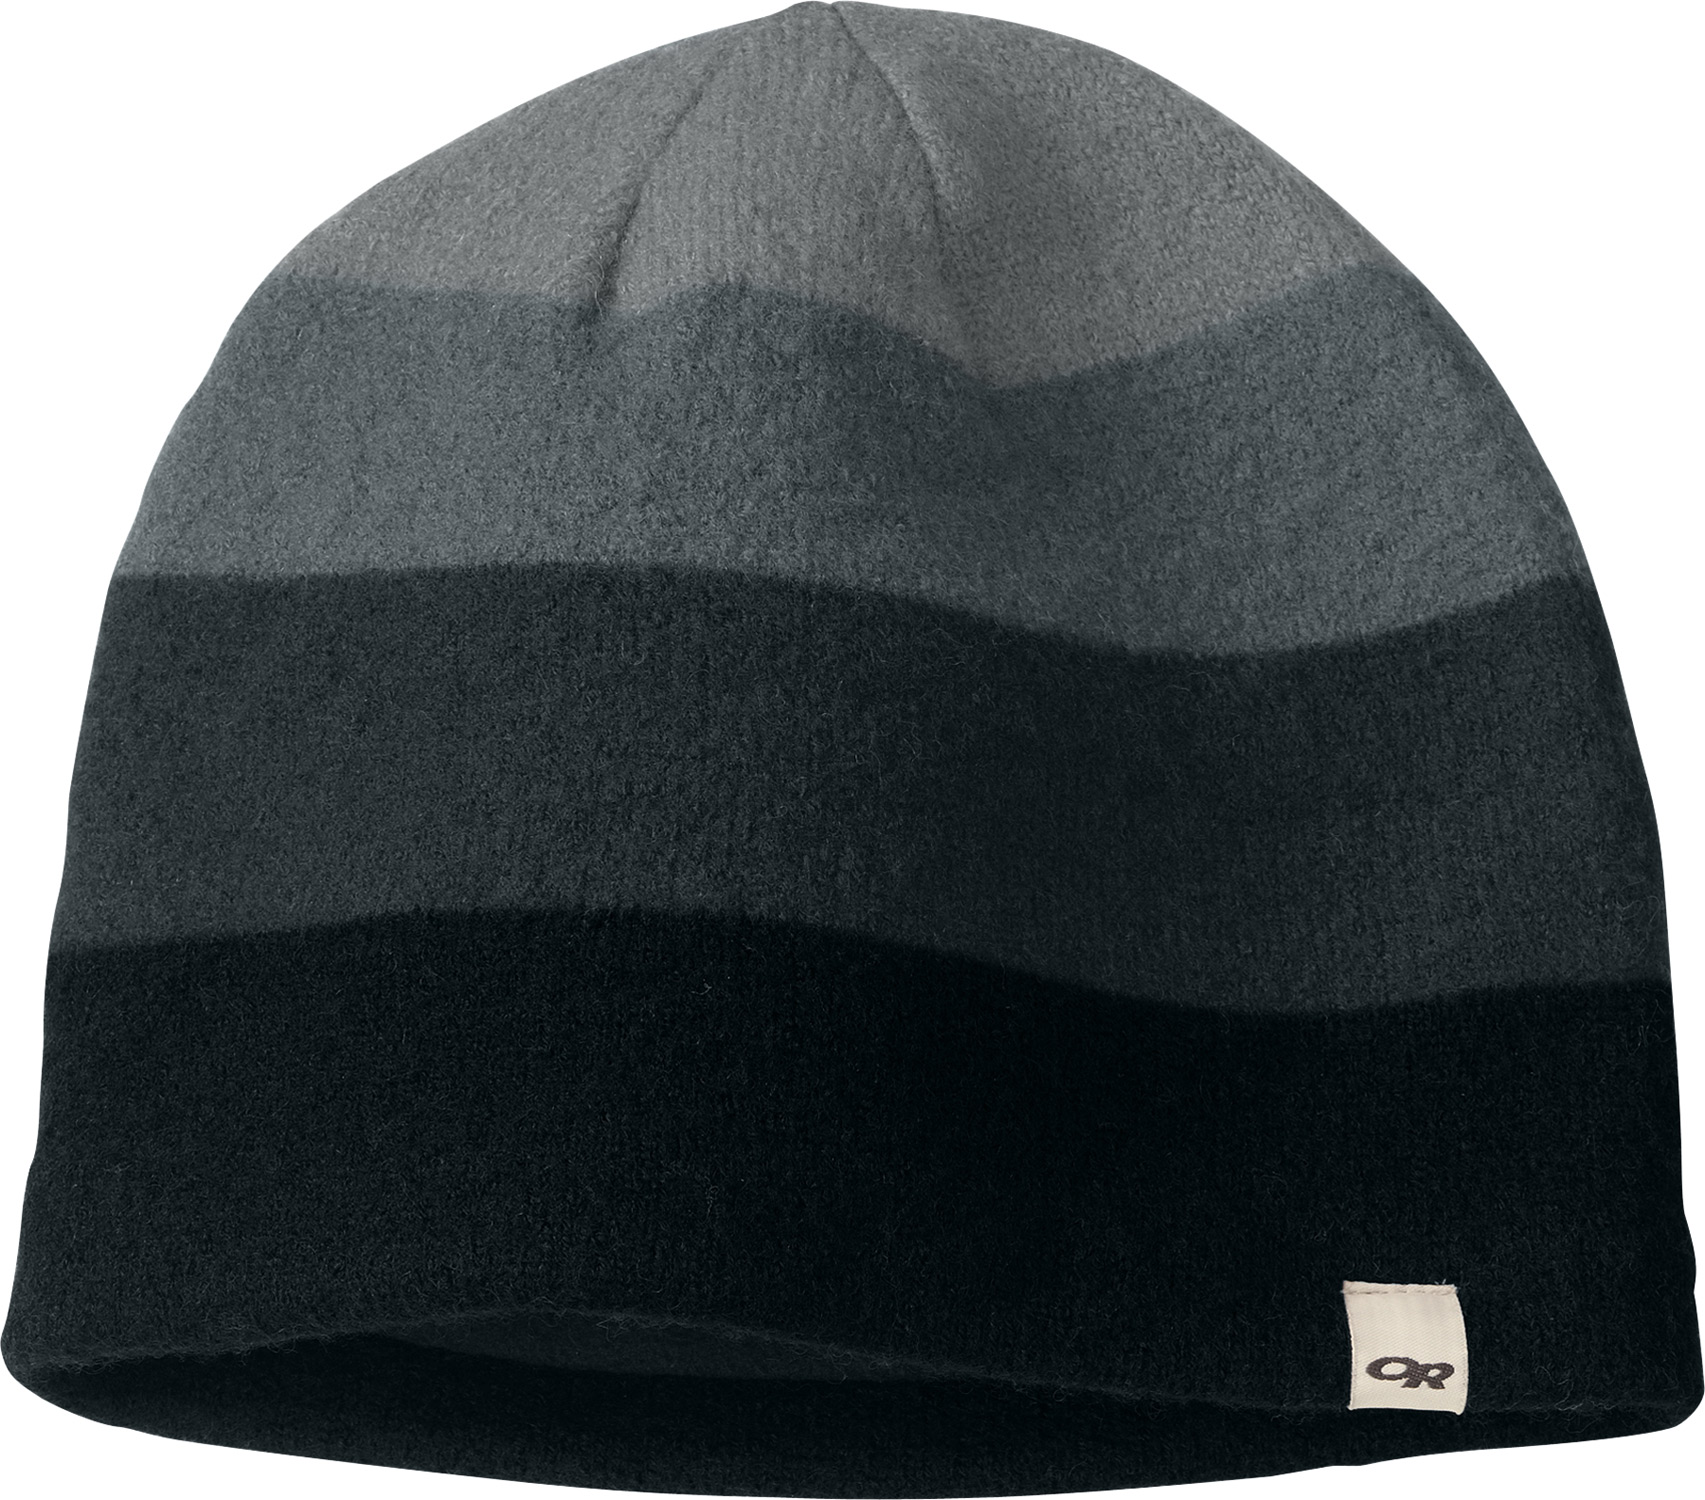 Key Features of the Outdoor Research Gradient Beanie: 100% boiled wool Fleece lined ear band - $22.65